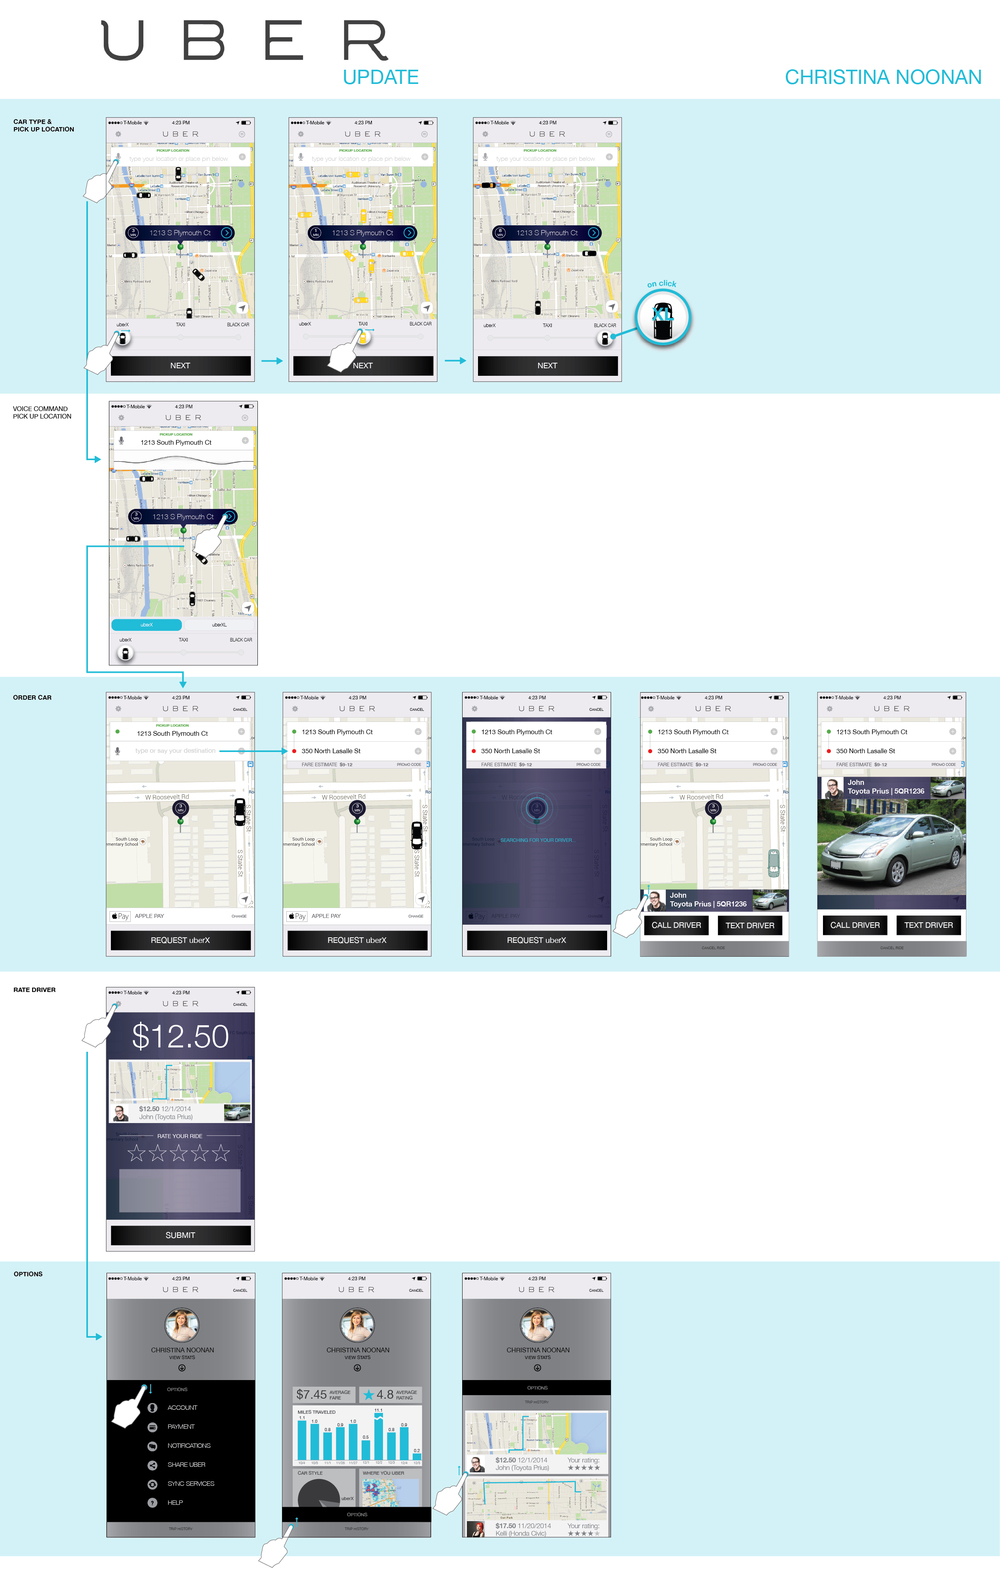 uber_update_wireframe.jpg